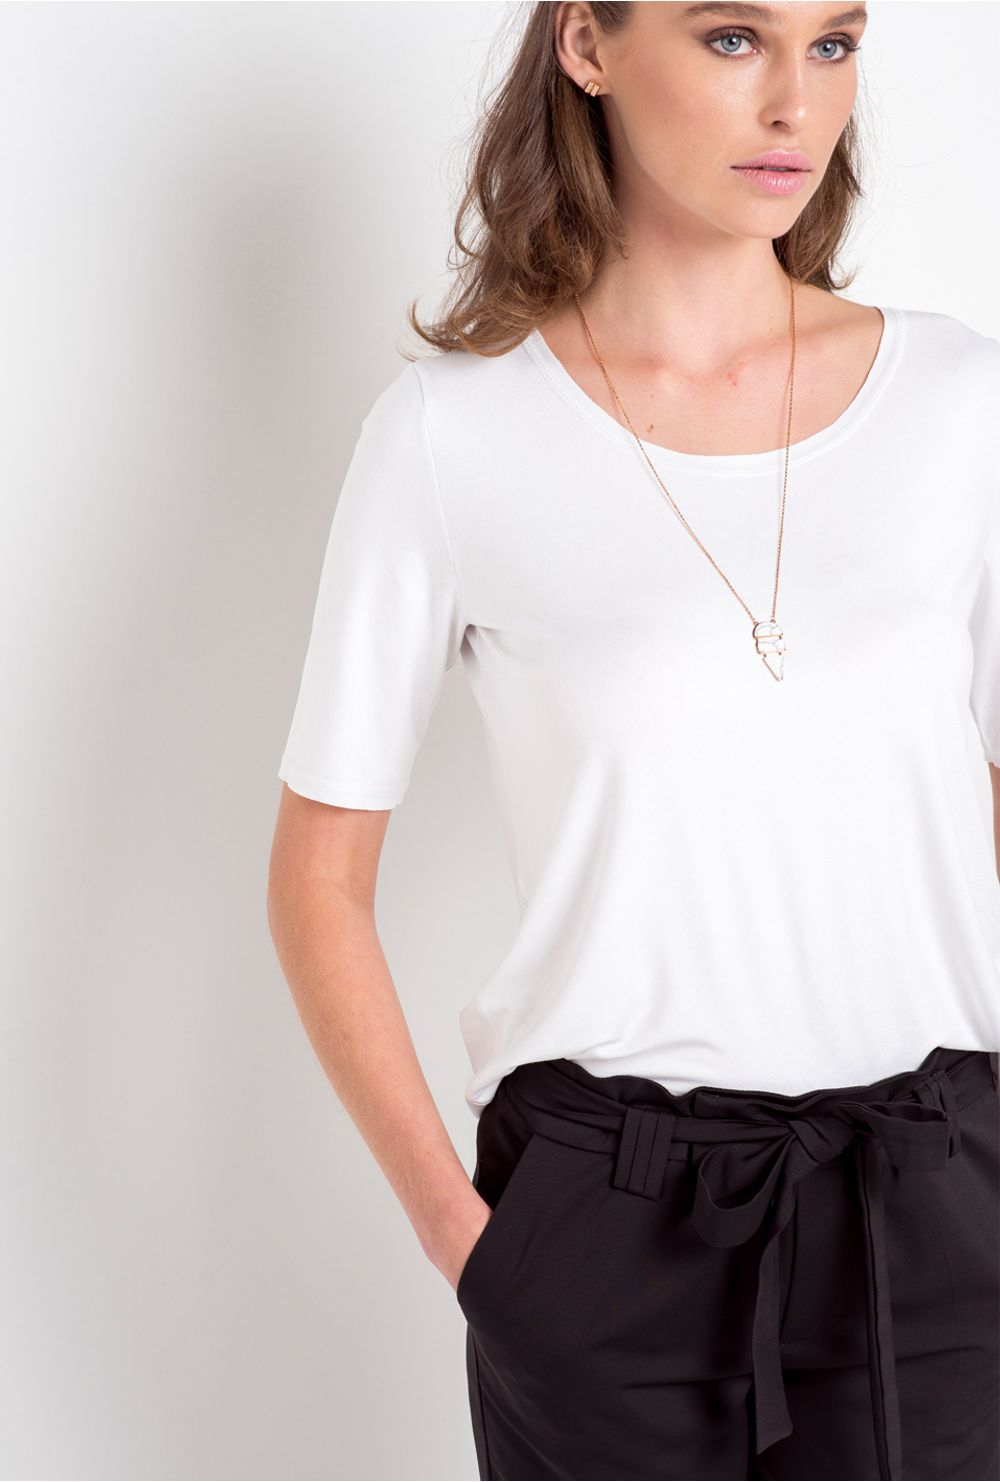 1bc40a982 AddThis Sharing Buttons. Share to Facebook Share to Twitter Share to  Pinterest. Blusa Básica Braga Branca